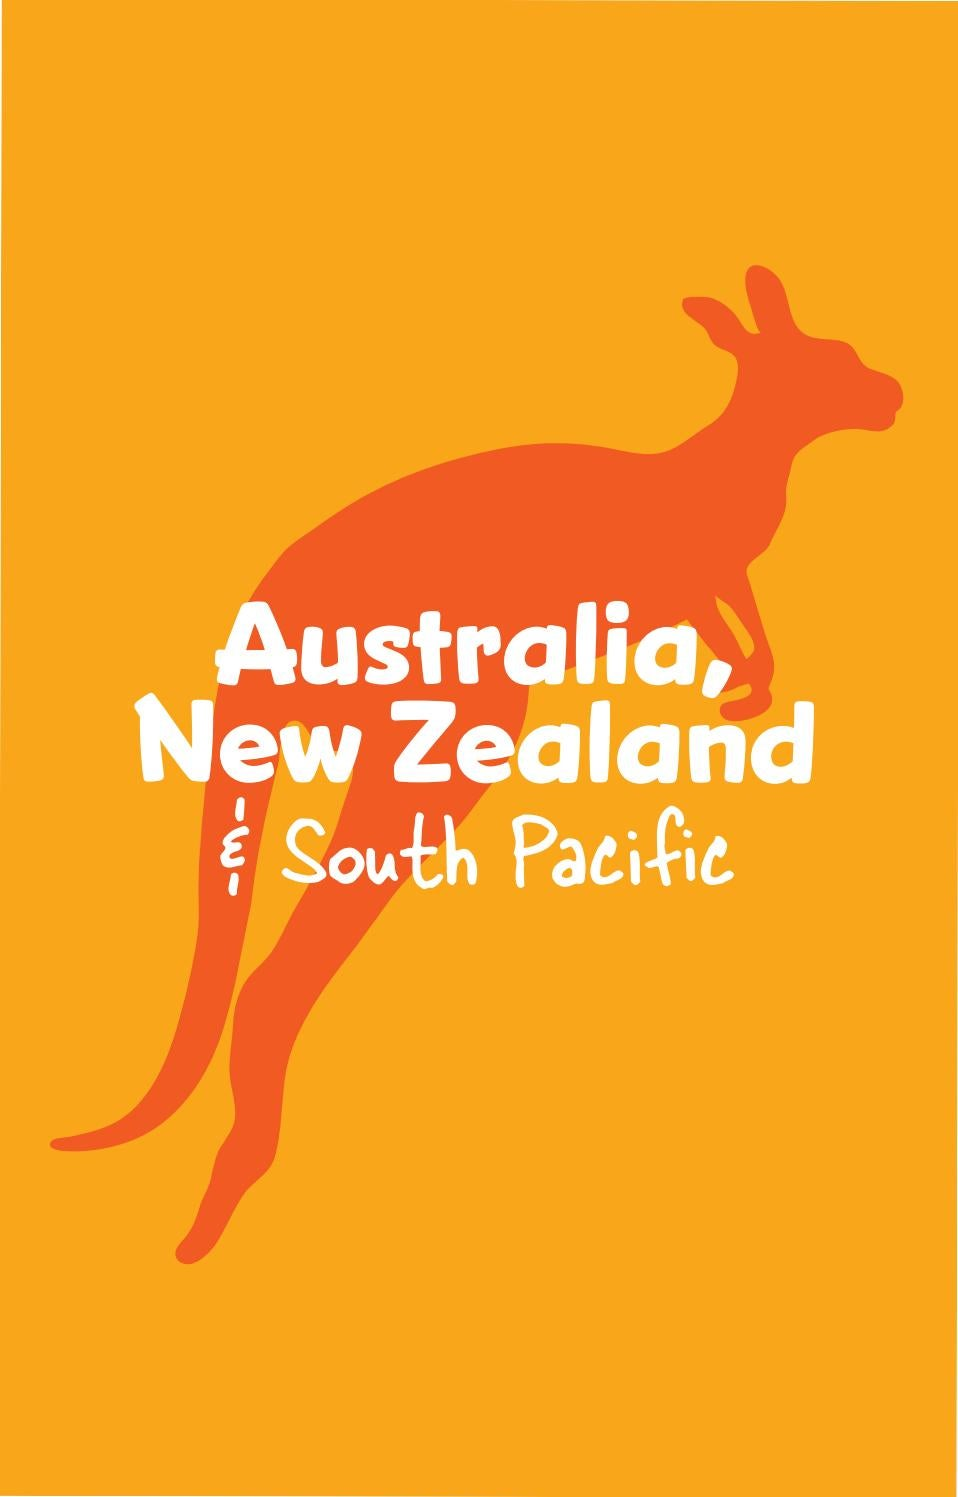 Queensferry Travel Australia New Zealand Brochure By Queensferry Travel Issuu